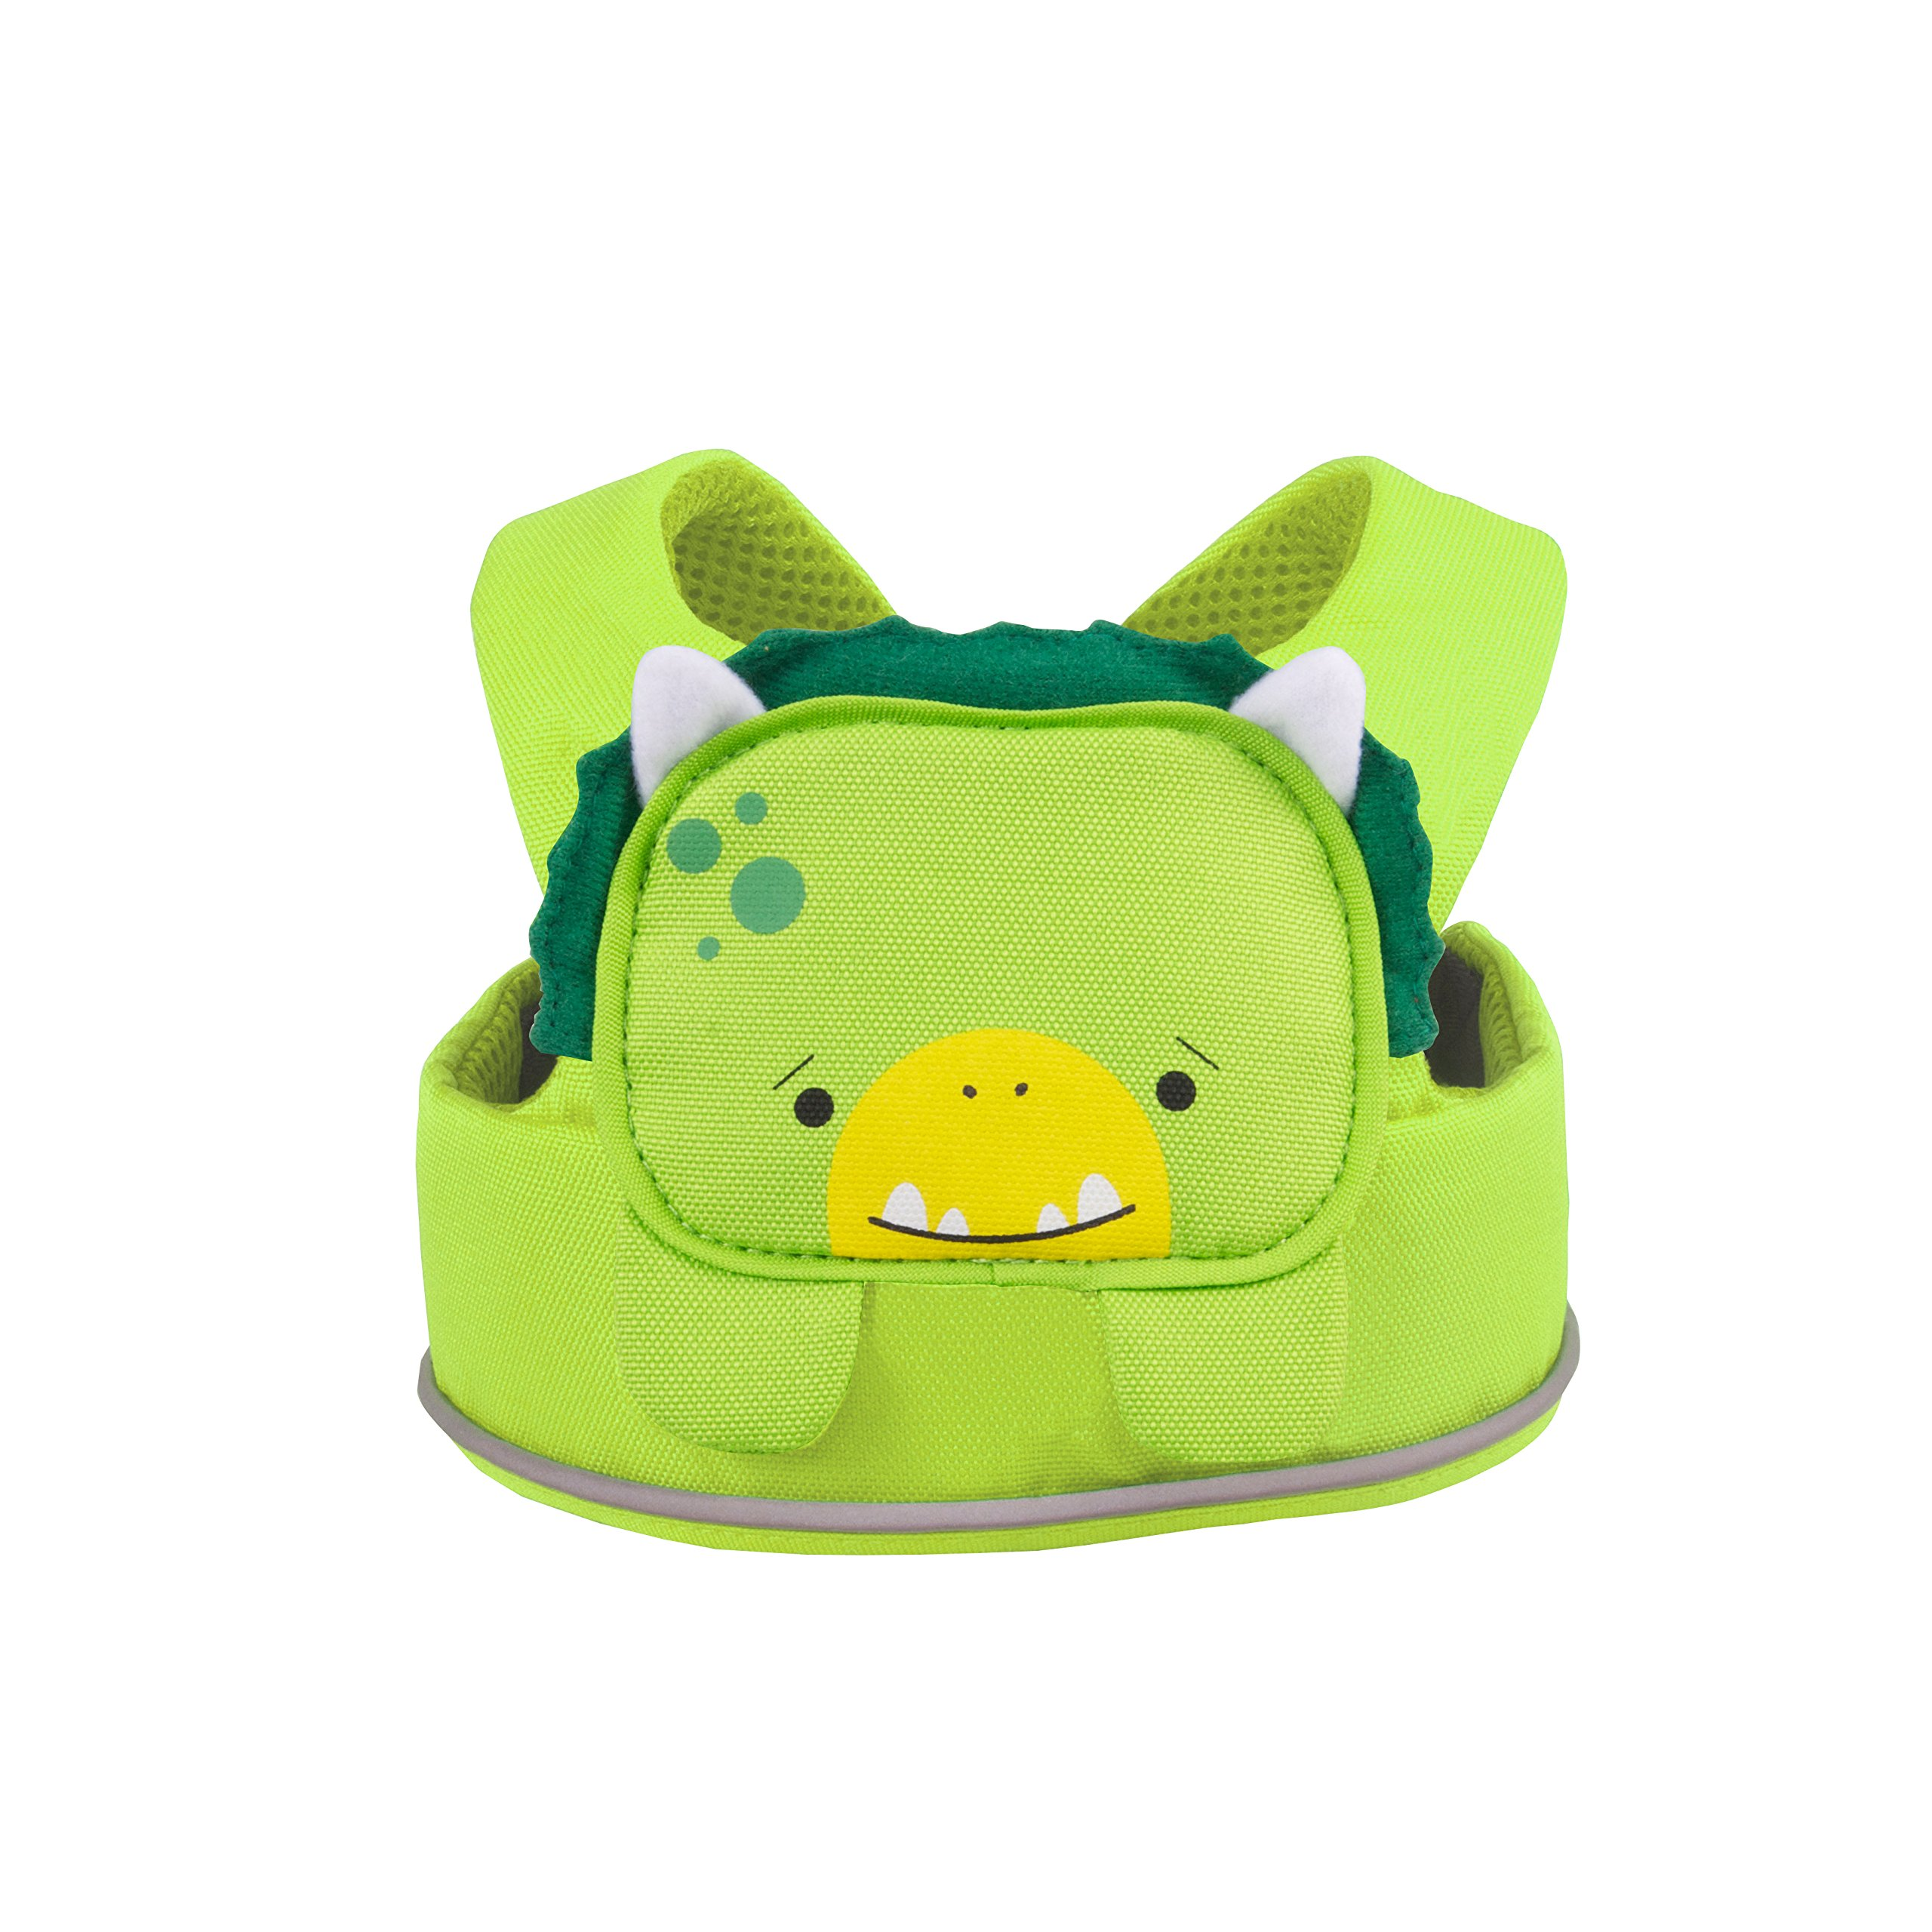 Trunki ToddlePak - Fuss Free Toddler Walking Leash & Kid's Safety Harness – Dudley Dinosaur (Green) by Trunki (Image #3)